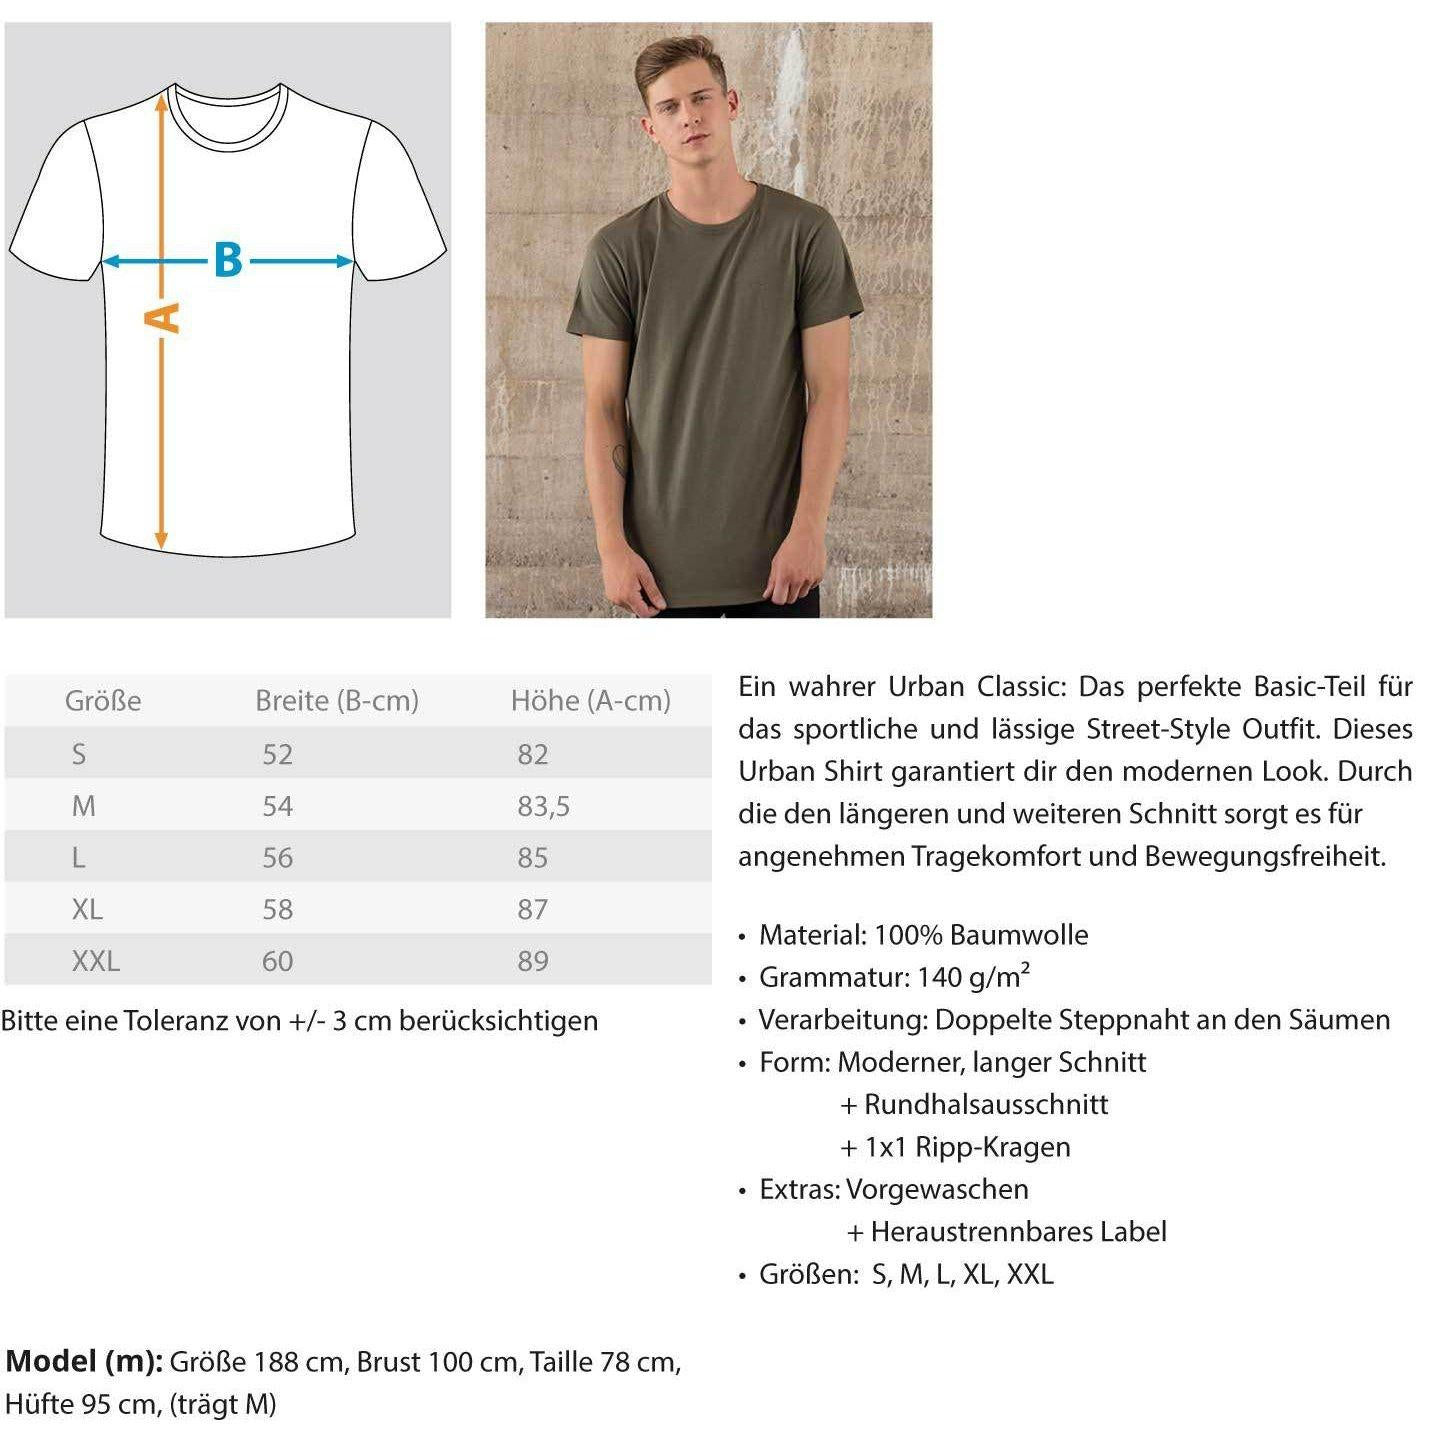 ACID HOUSE White Smiles - Rave On!® - Herren Long Tee Men Long Tee - Rave On!® der Club & Techno Szene Shop für Coole Junge Mode Streetwear Style & Fashion Outfits + Sexy Festival 420 Stuff